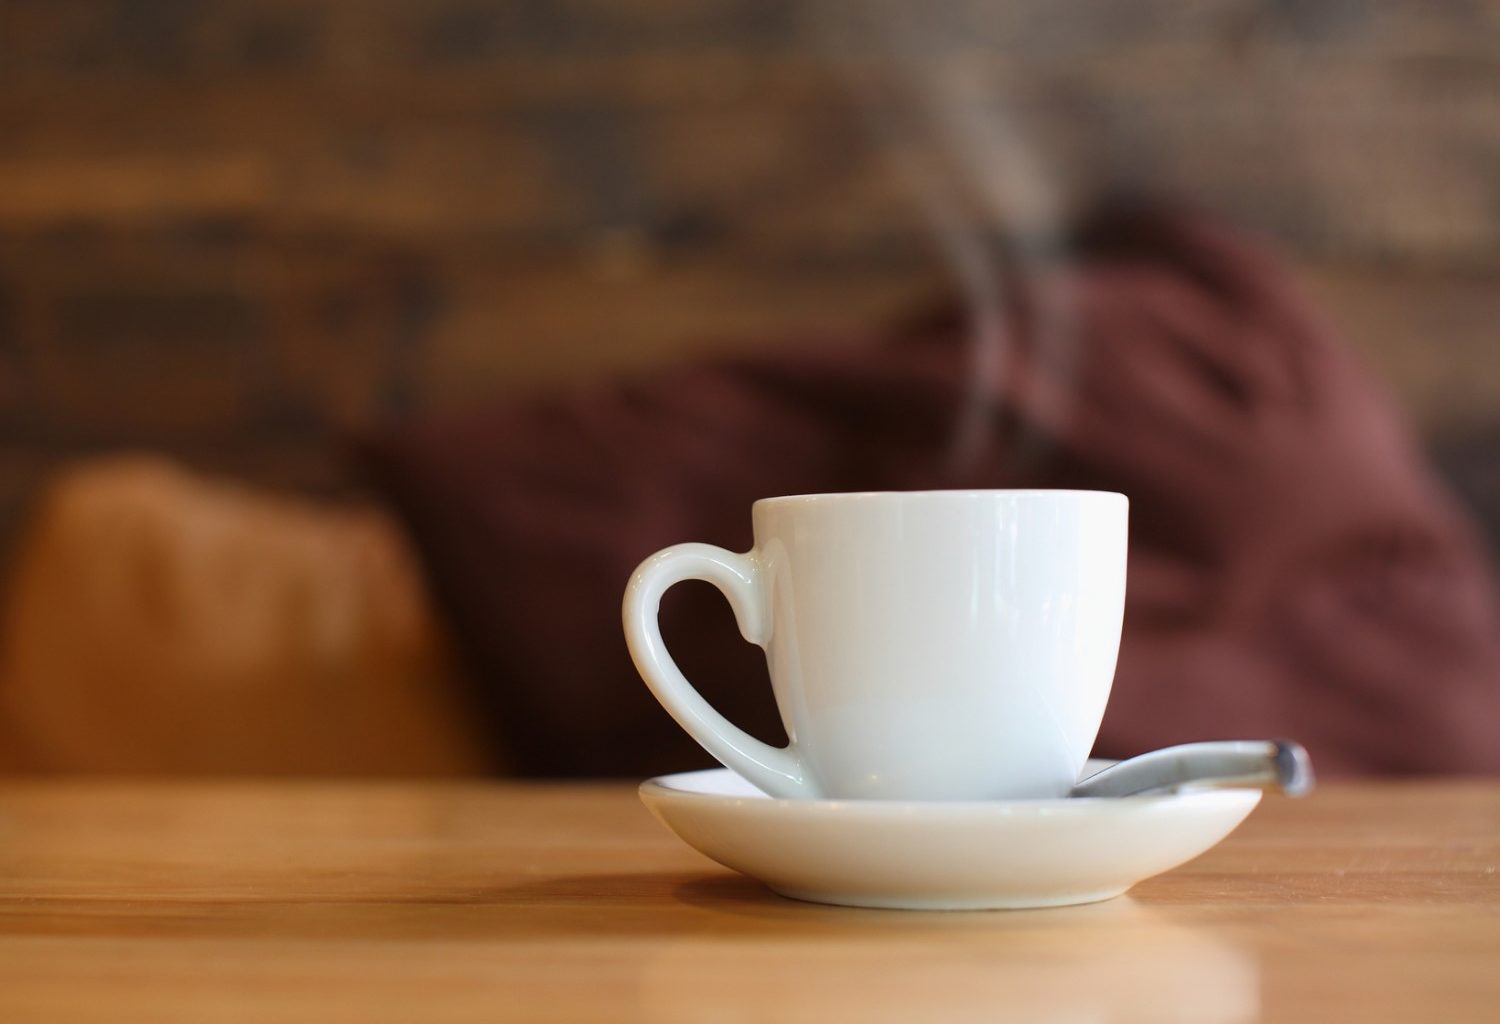 A hot cup of coffee served in a white cup